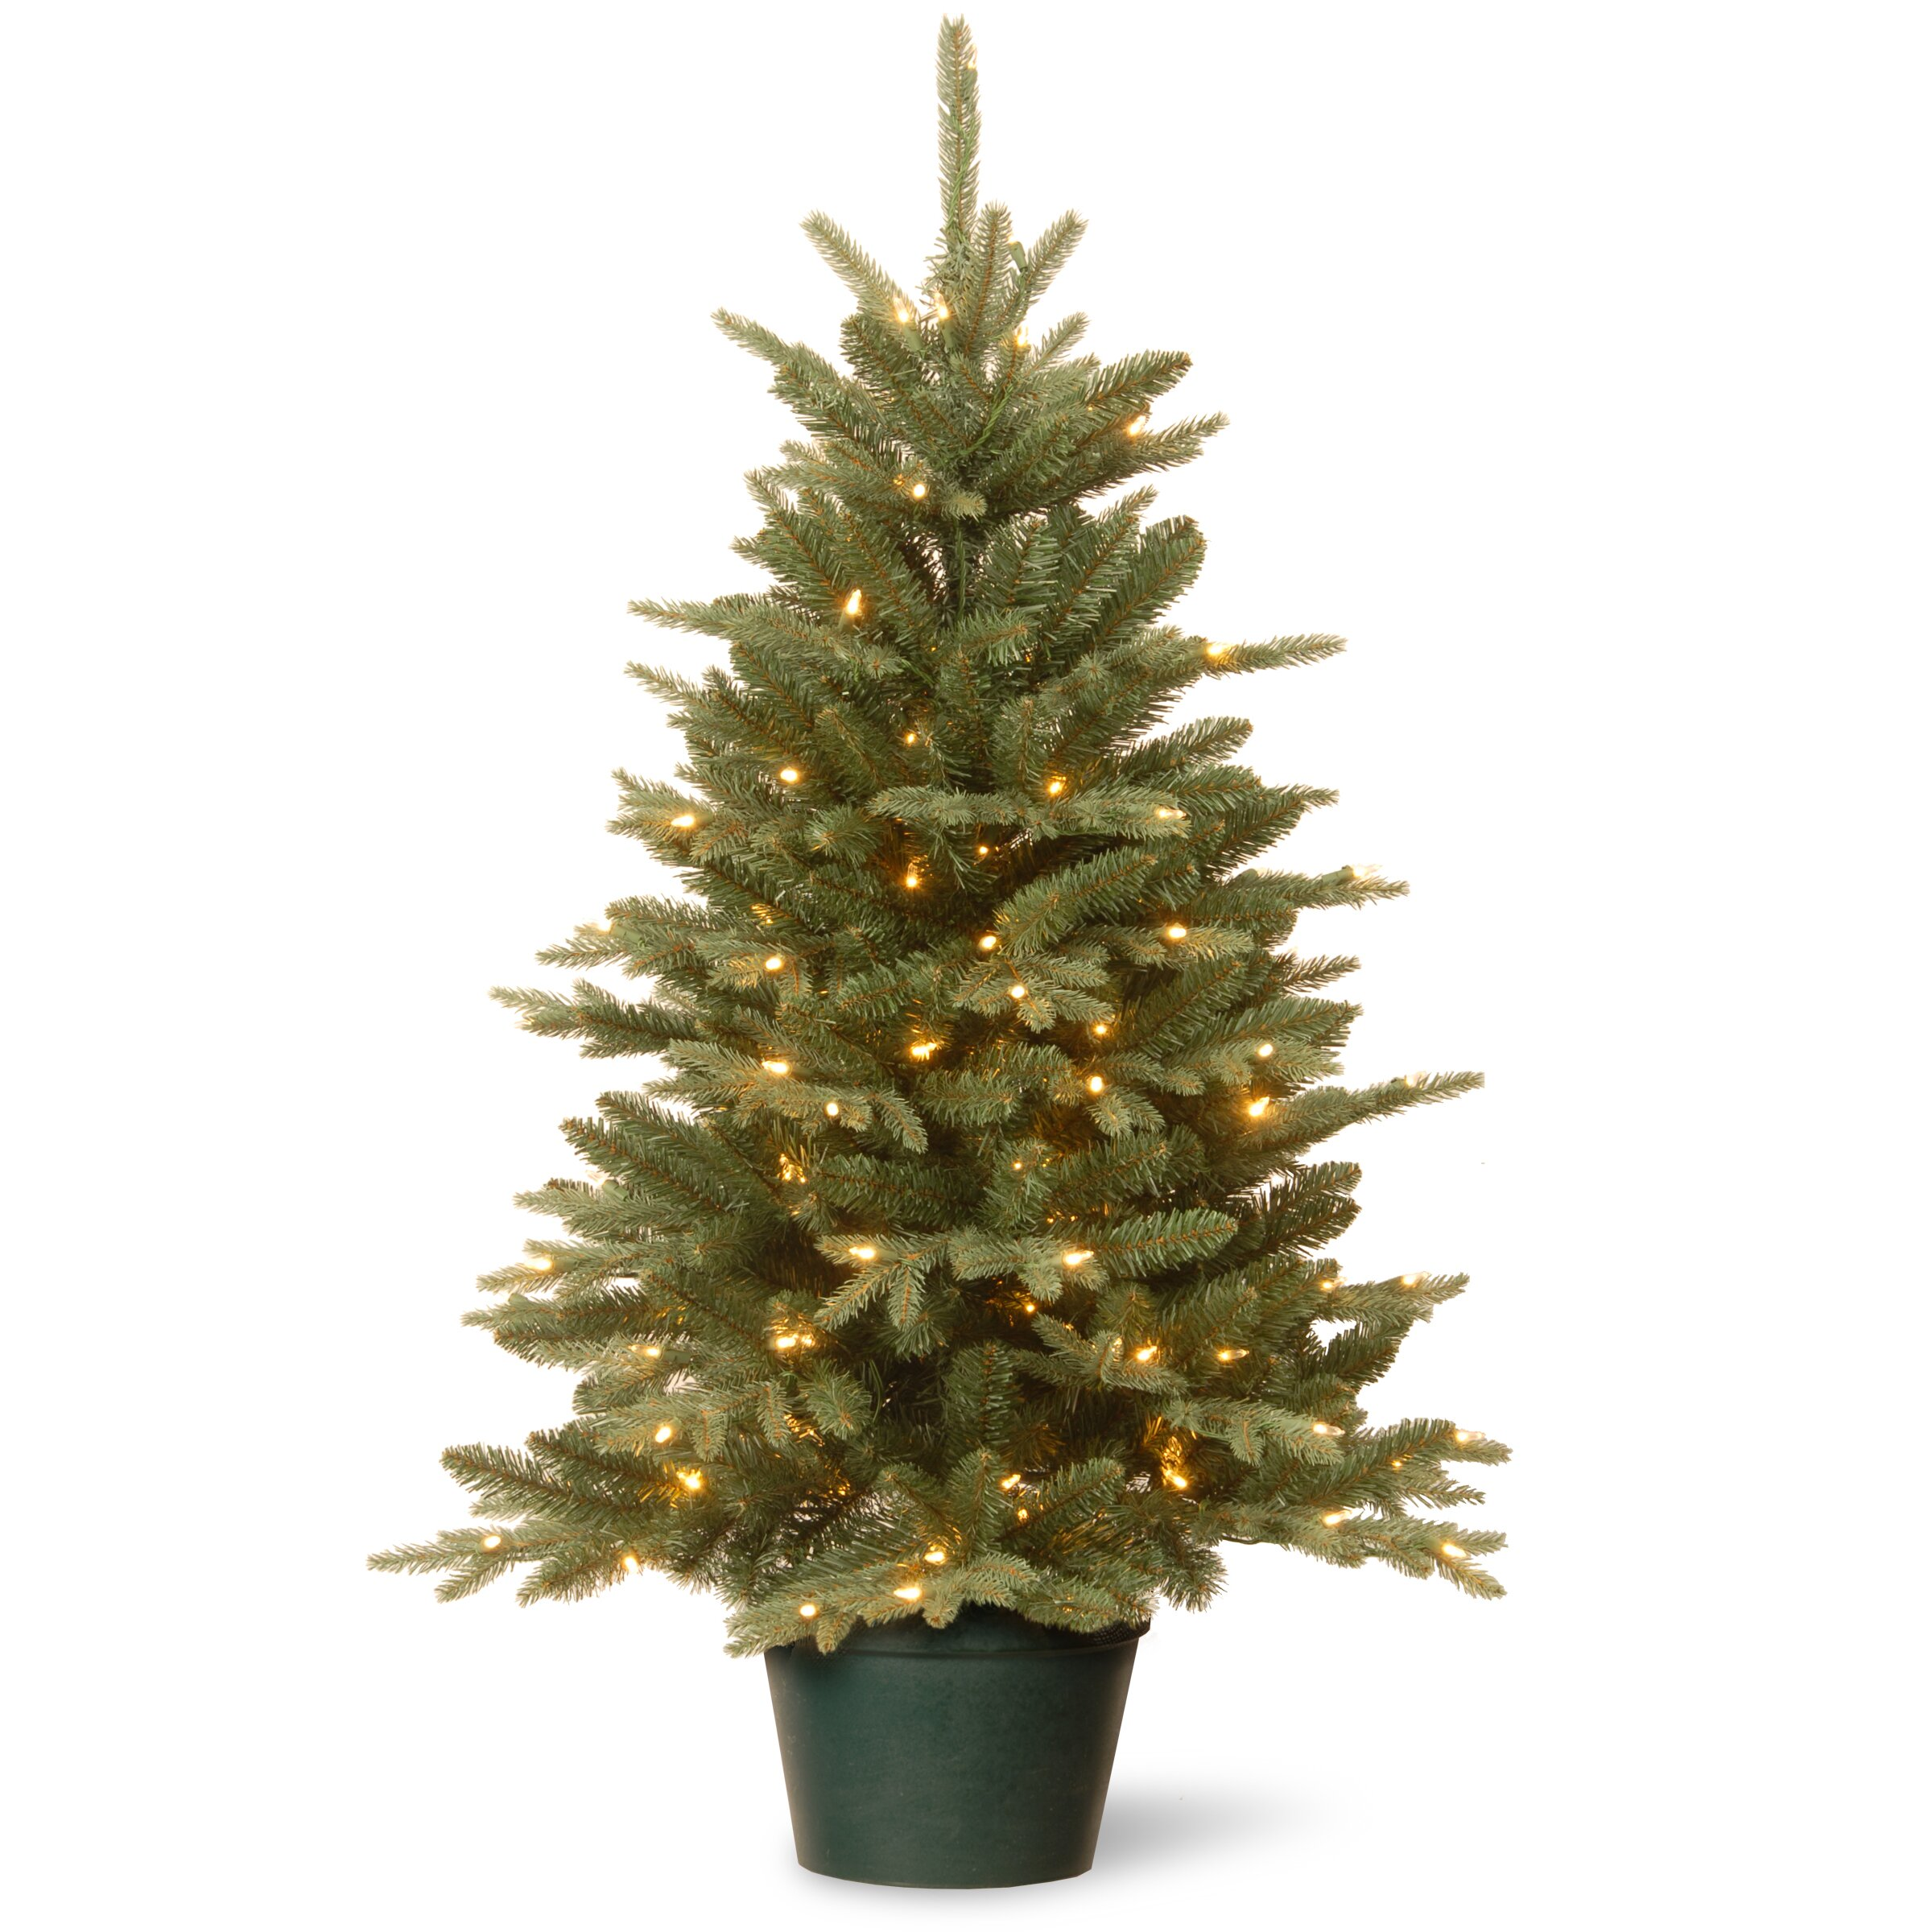 National Tree Co. Evergreen 3' Green Artificial Christmas ...